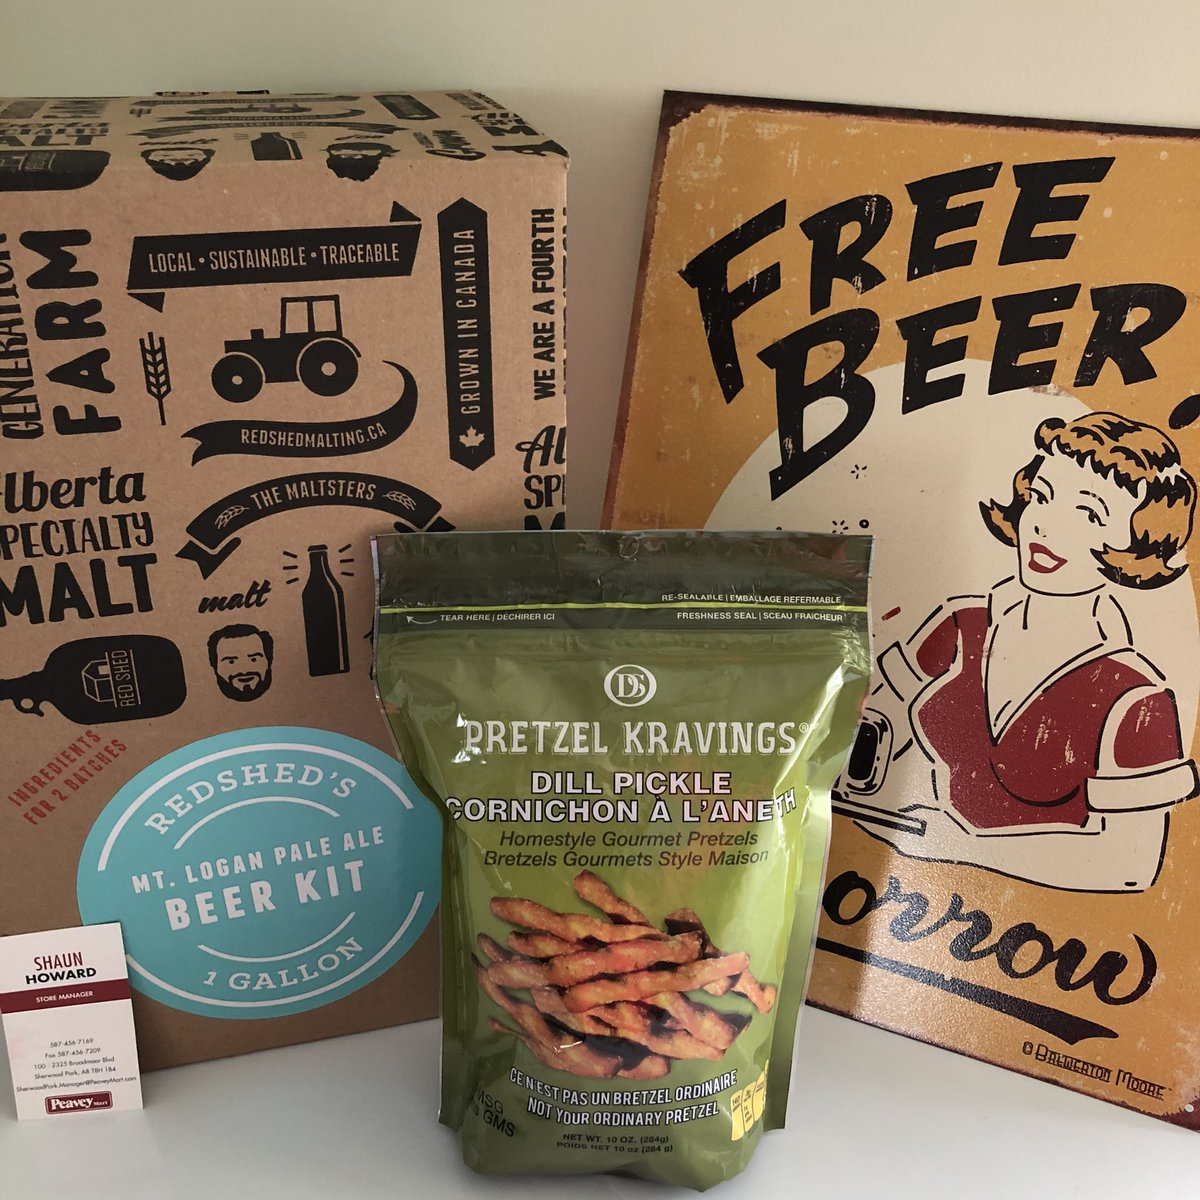 Beer and pretzels anyone?  Thanks @ItsShaunWithAu at the Sherwood Park Peavey Mart for thud great item. #OilersLiveCup #redlips  for #MoreMoments Feb 29.  http://bit.ly/OilersLiveCuppic.twitter.com/fdICBP2sCl